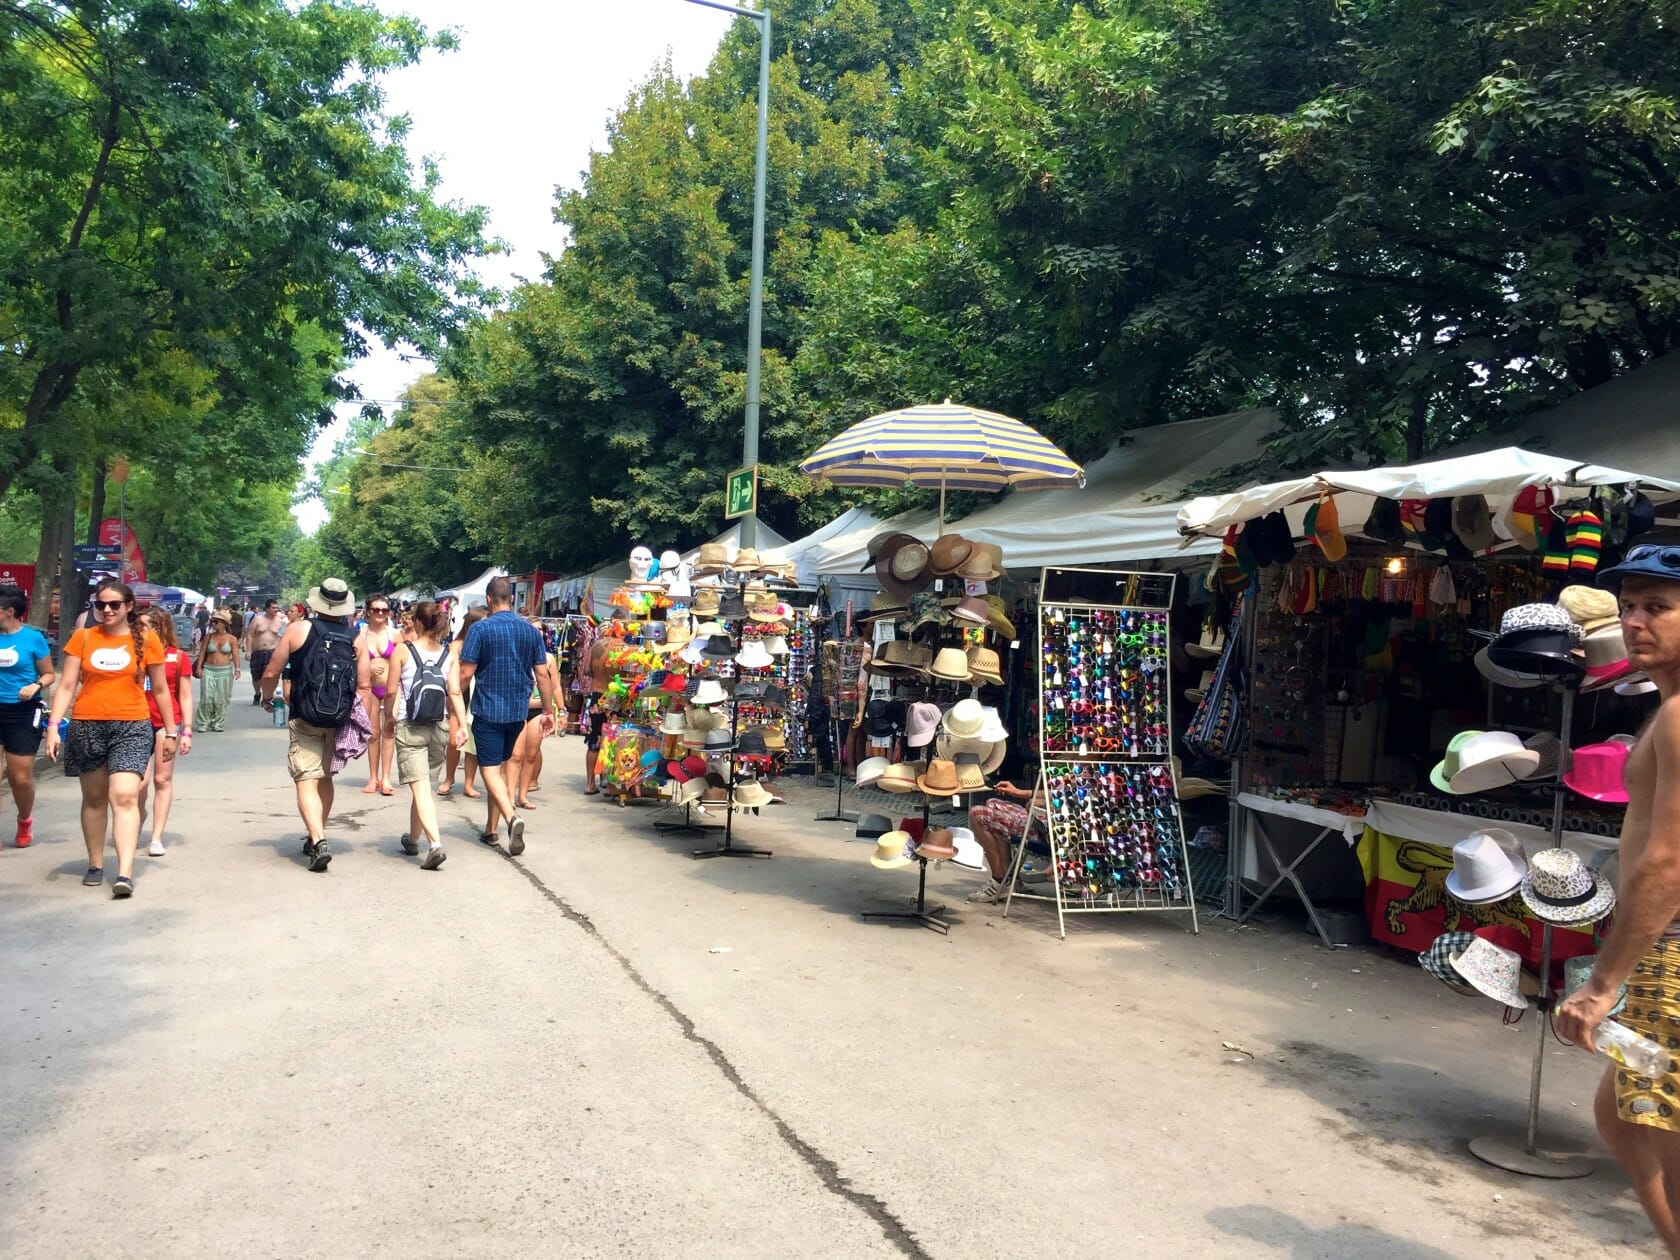 sziget review + festival guide for sziget festival in budapest august market stalls